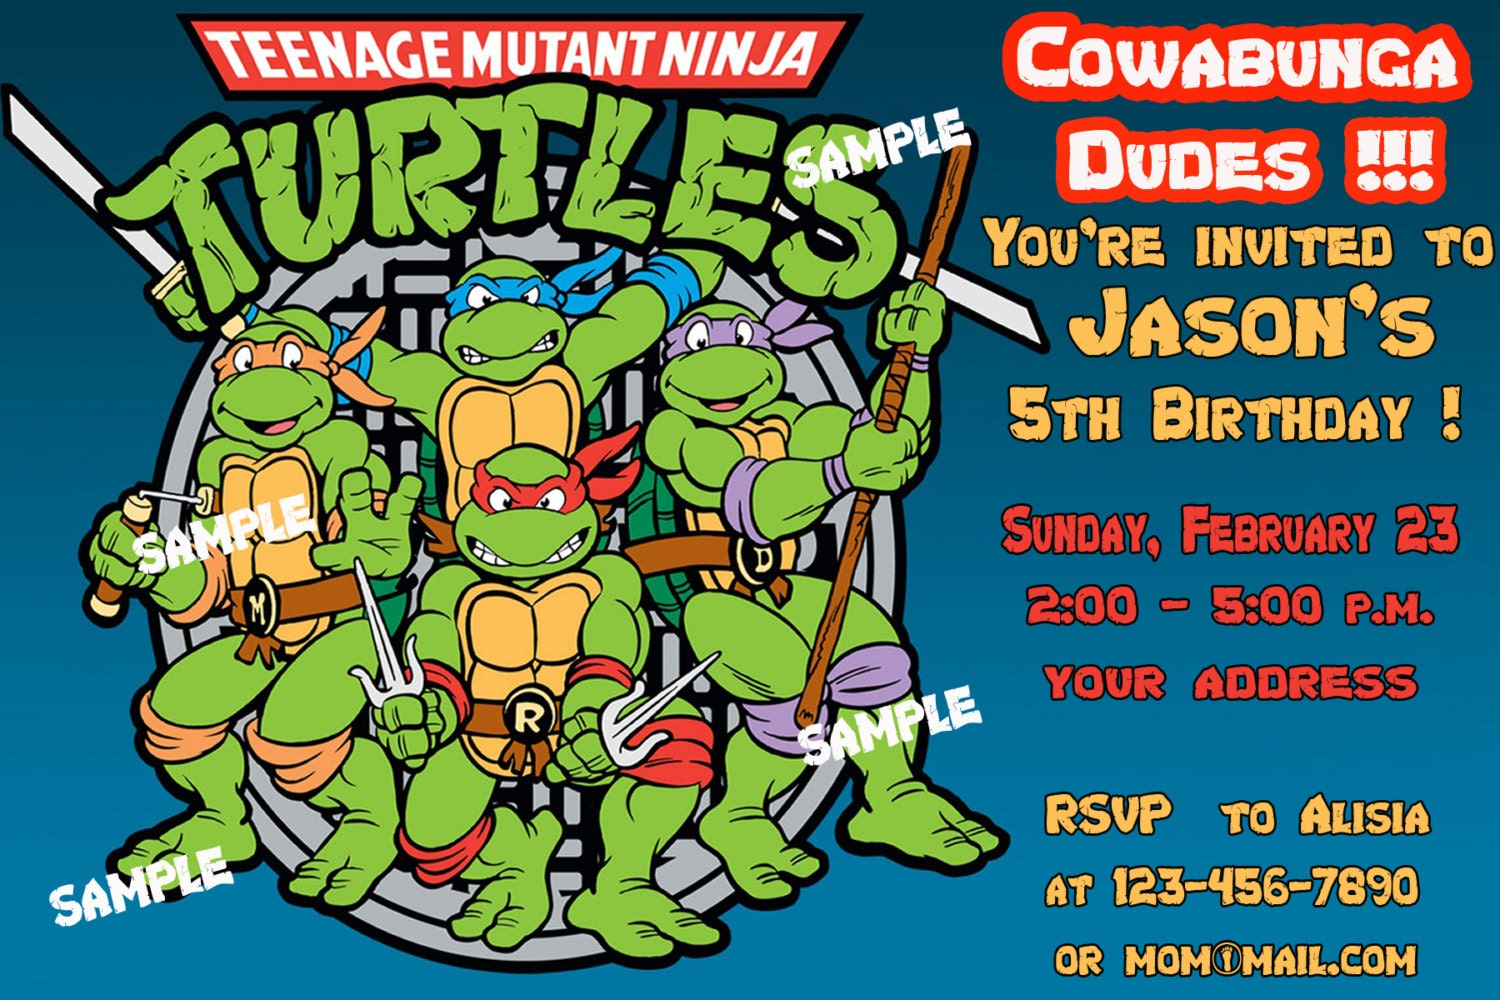 Teenage mutant ninja turtles invitations template - photo#24